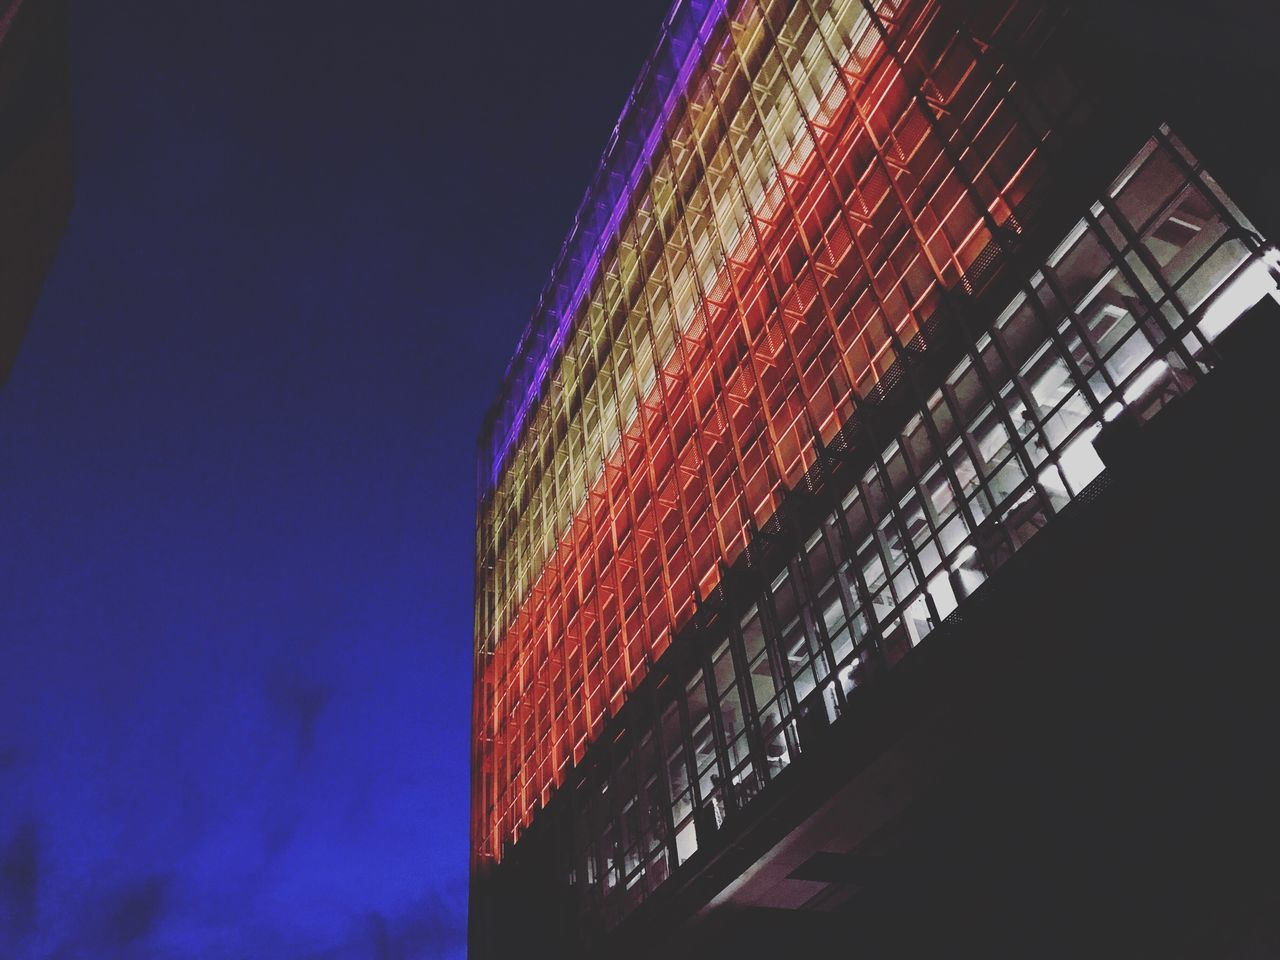 Architecture Night Building Exterior Built Structure Low Angle View Outdoors Blue Sky Red Clear Sky Love Life Colors Photography Colorful University University Campus